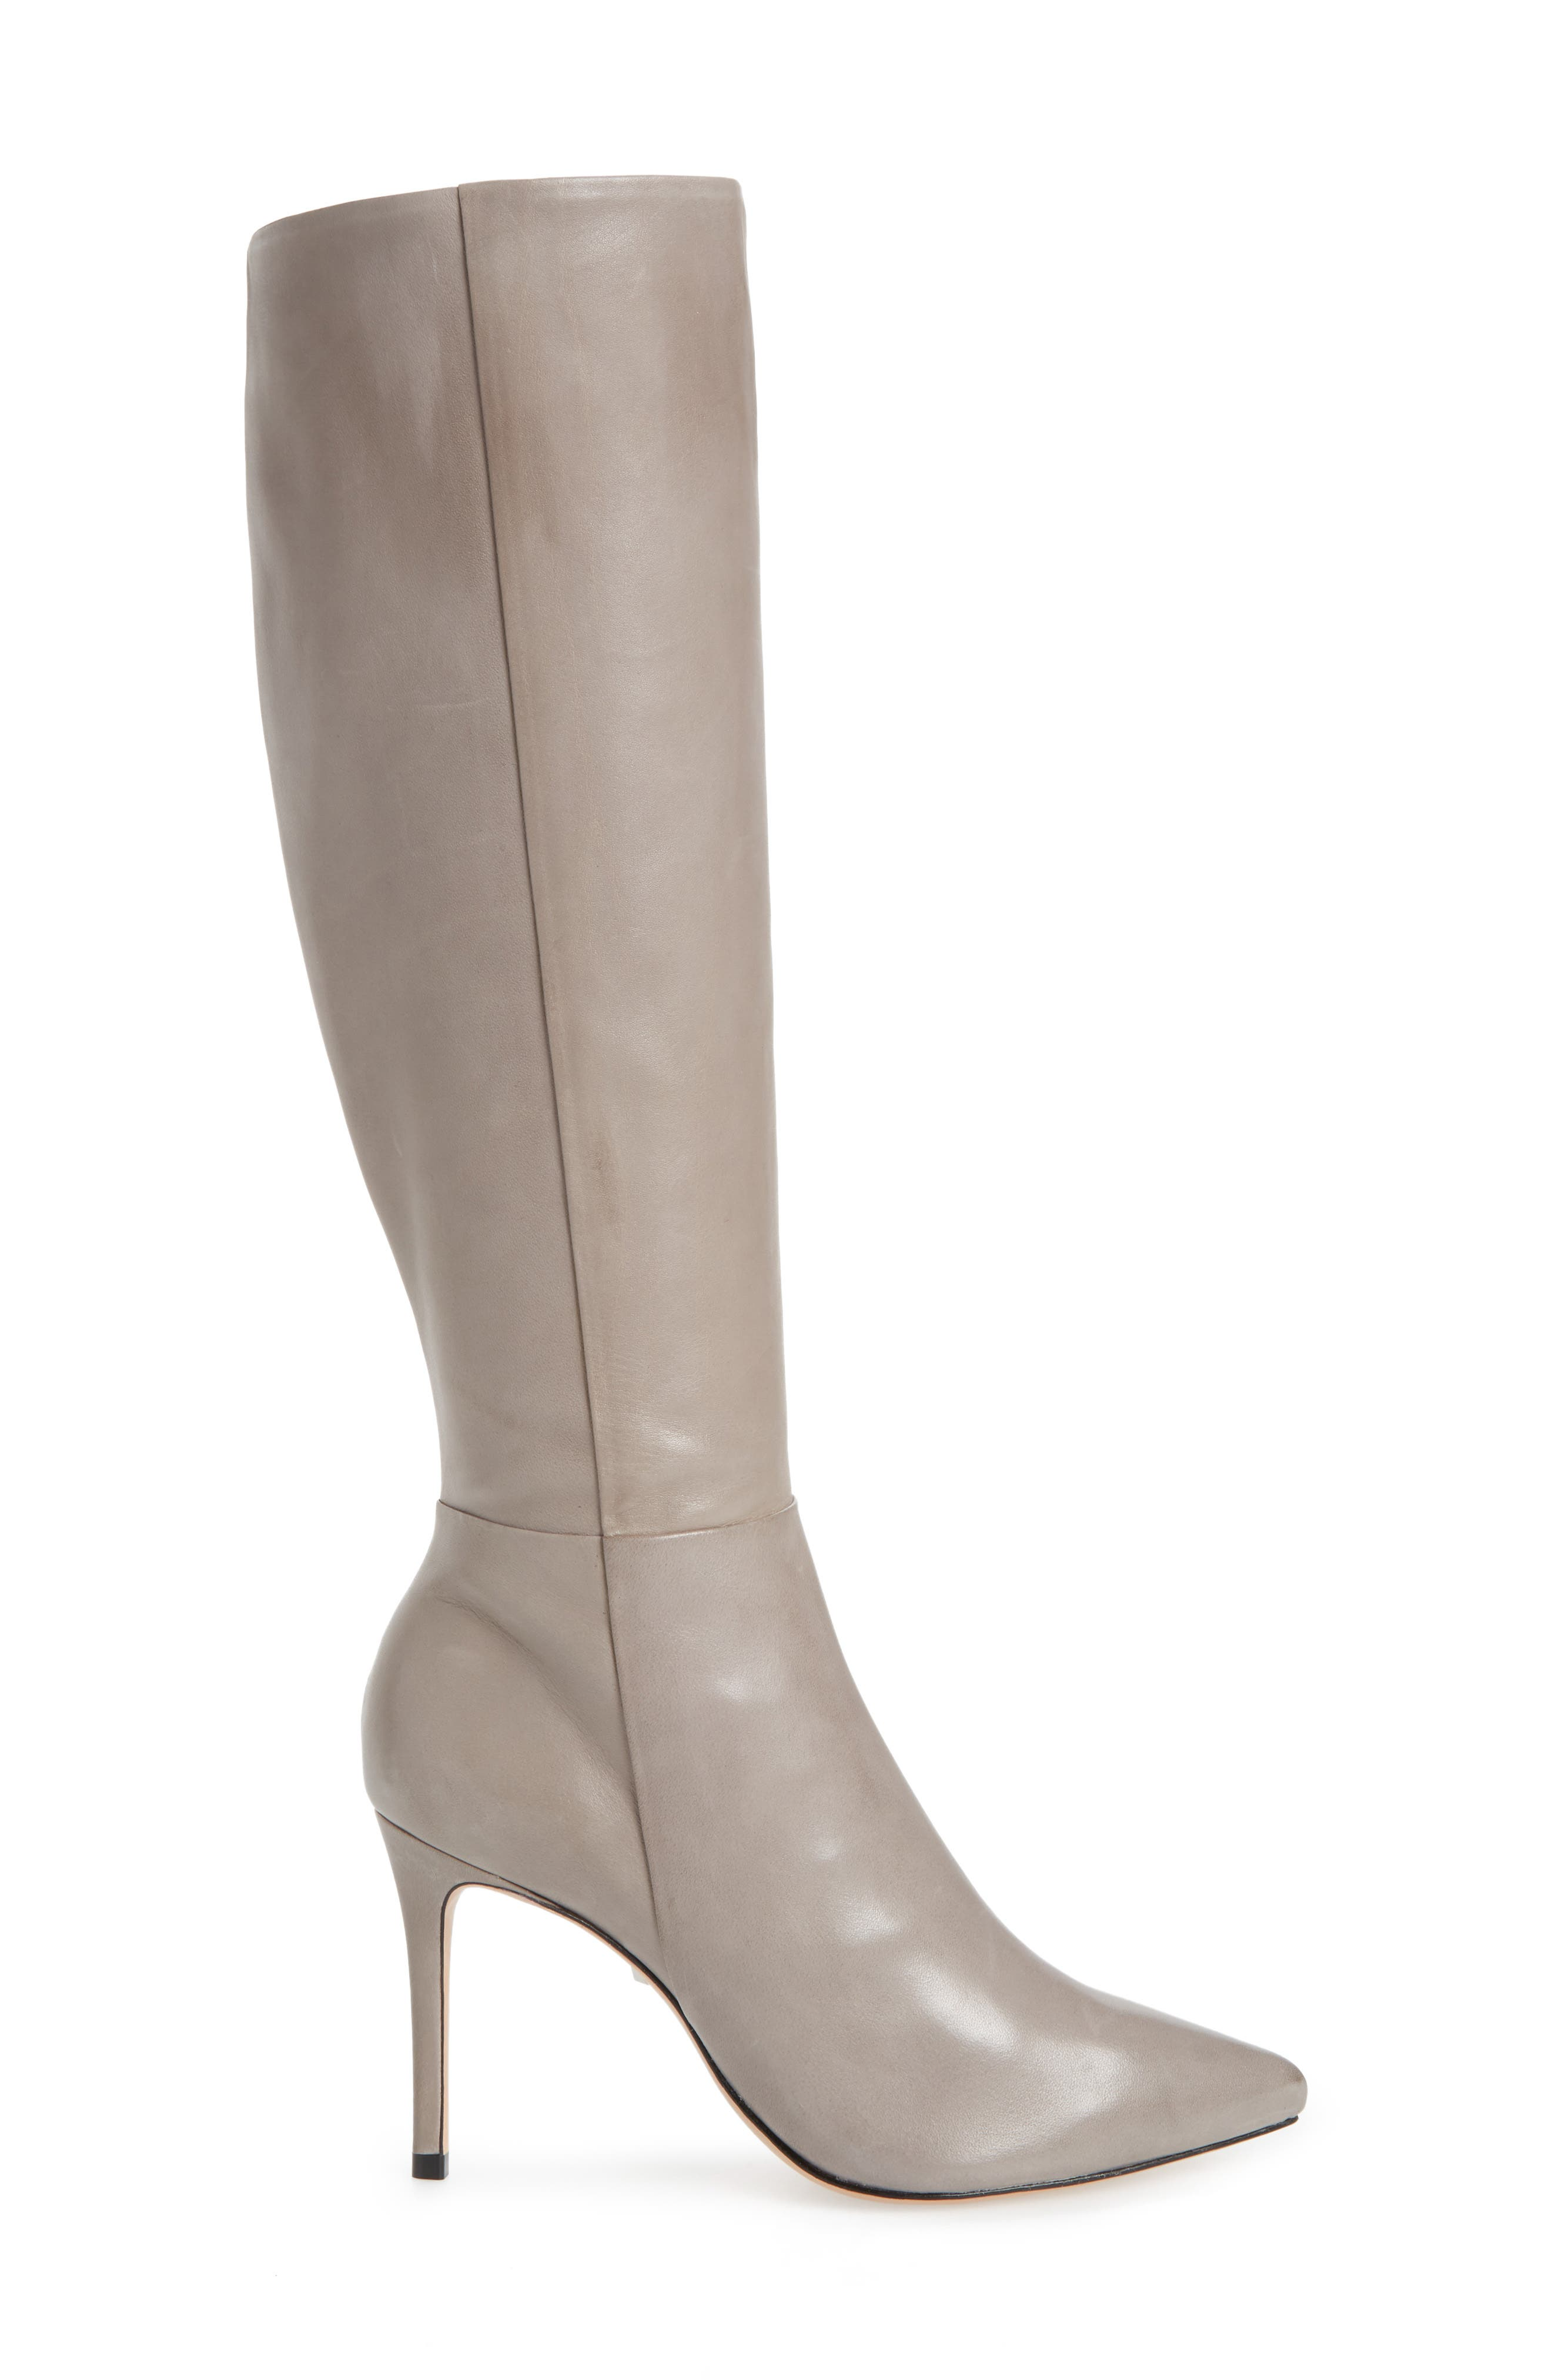 Magalli Knee High Boot,                             Alternate thumbnail 3, color,                             MOUSE LEATHER